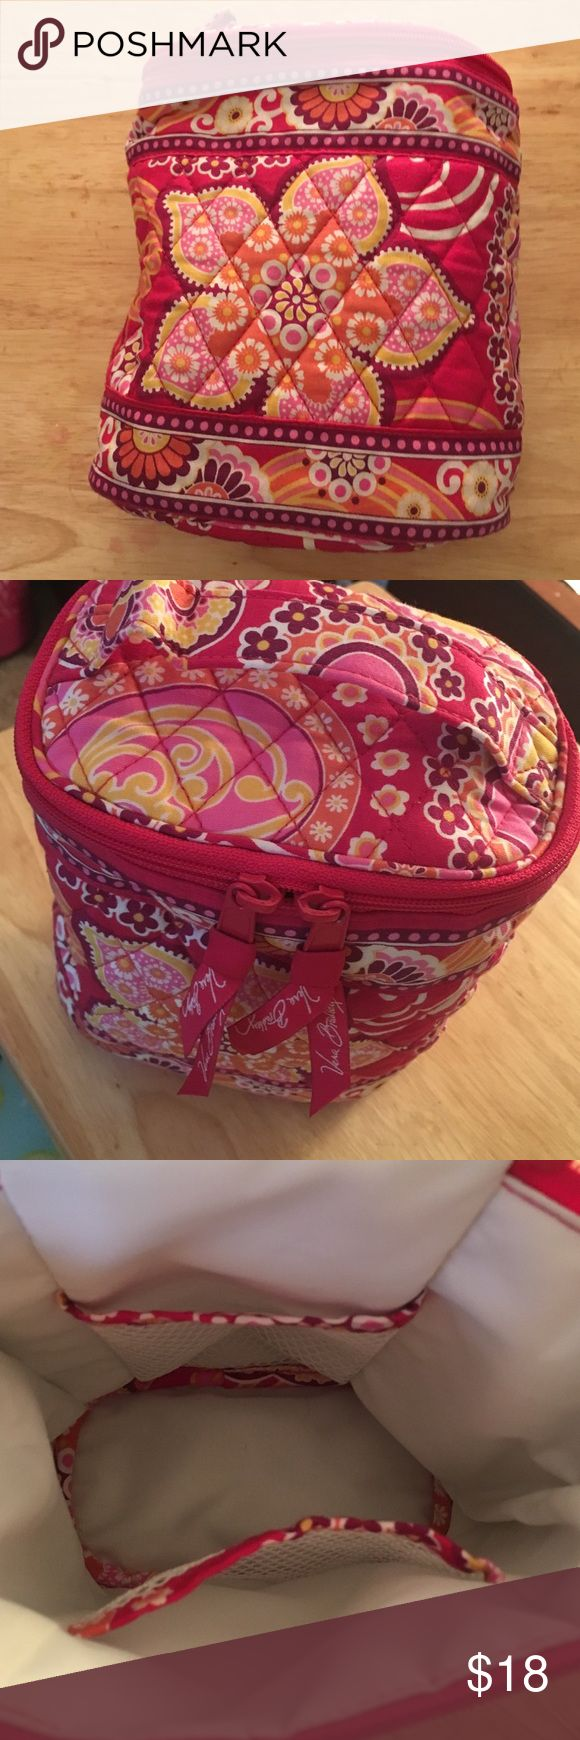 Vera bradly insulated bag- perfect condition! Super cute small insulated bag. Great for carrying a small lunch or great for baby bottles. Never used. I did take the rage off though with intent to use it. :) Vera Bradley Bags